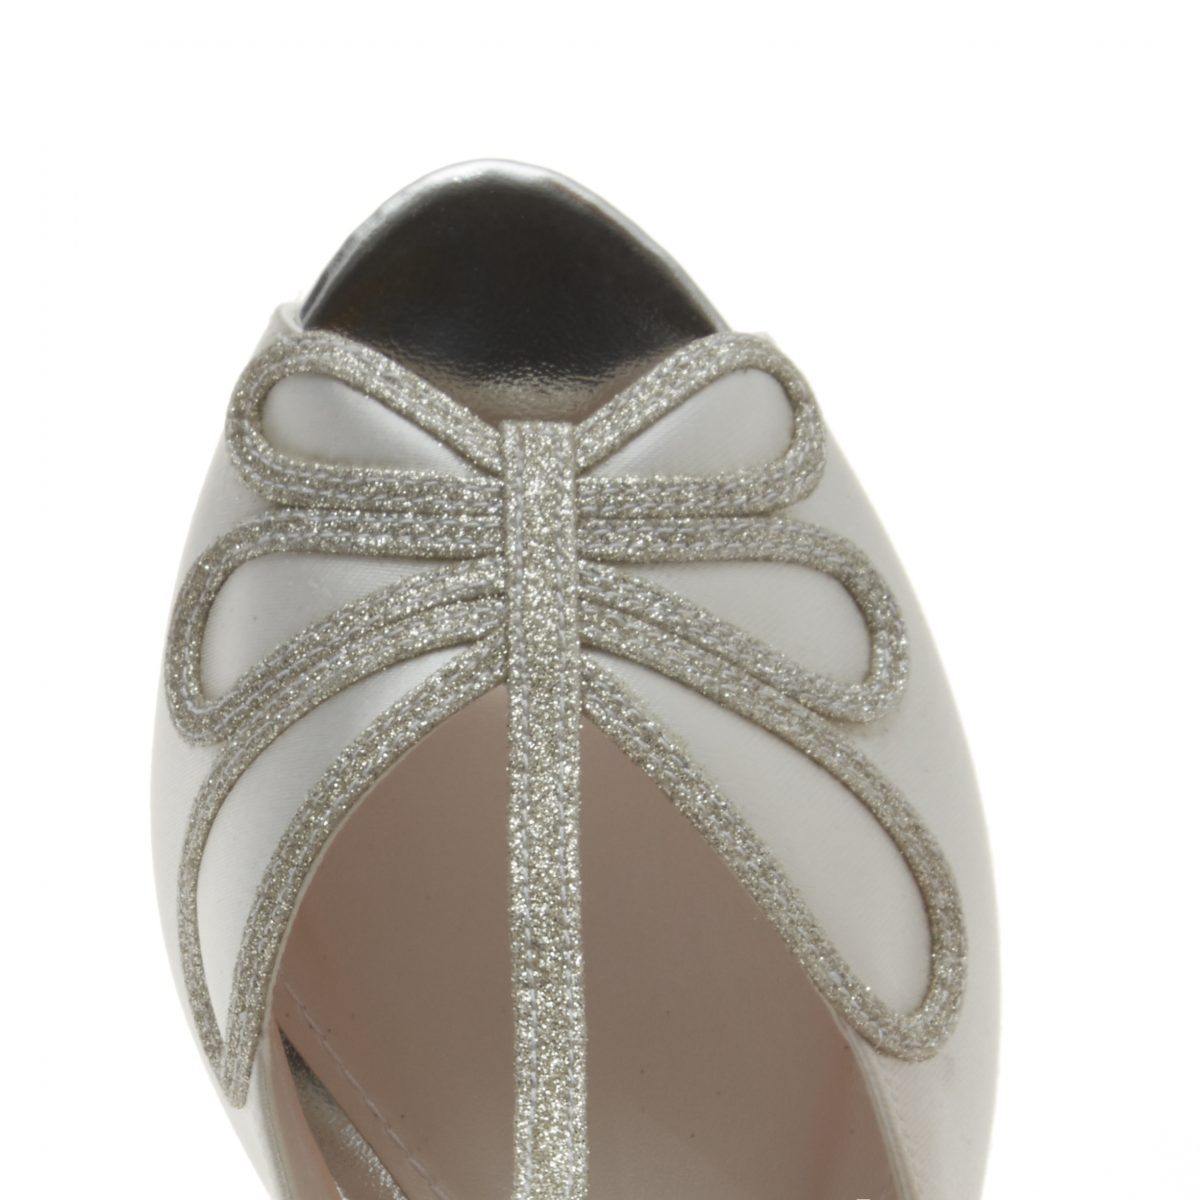 Rainbow Club Harlow - Peep Toe Satin/ Silver Shimmer Shoe 3